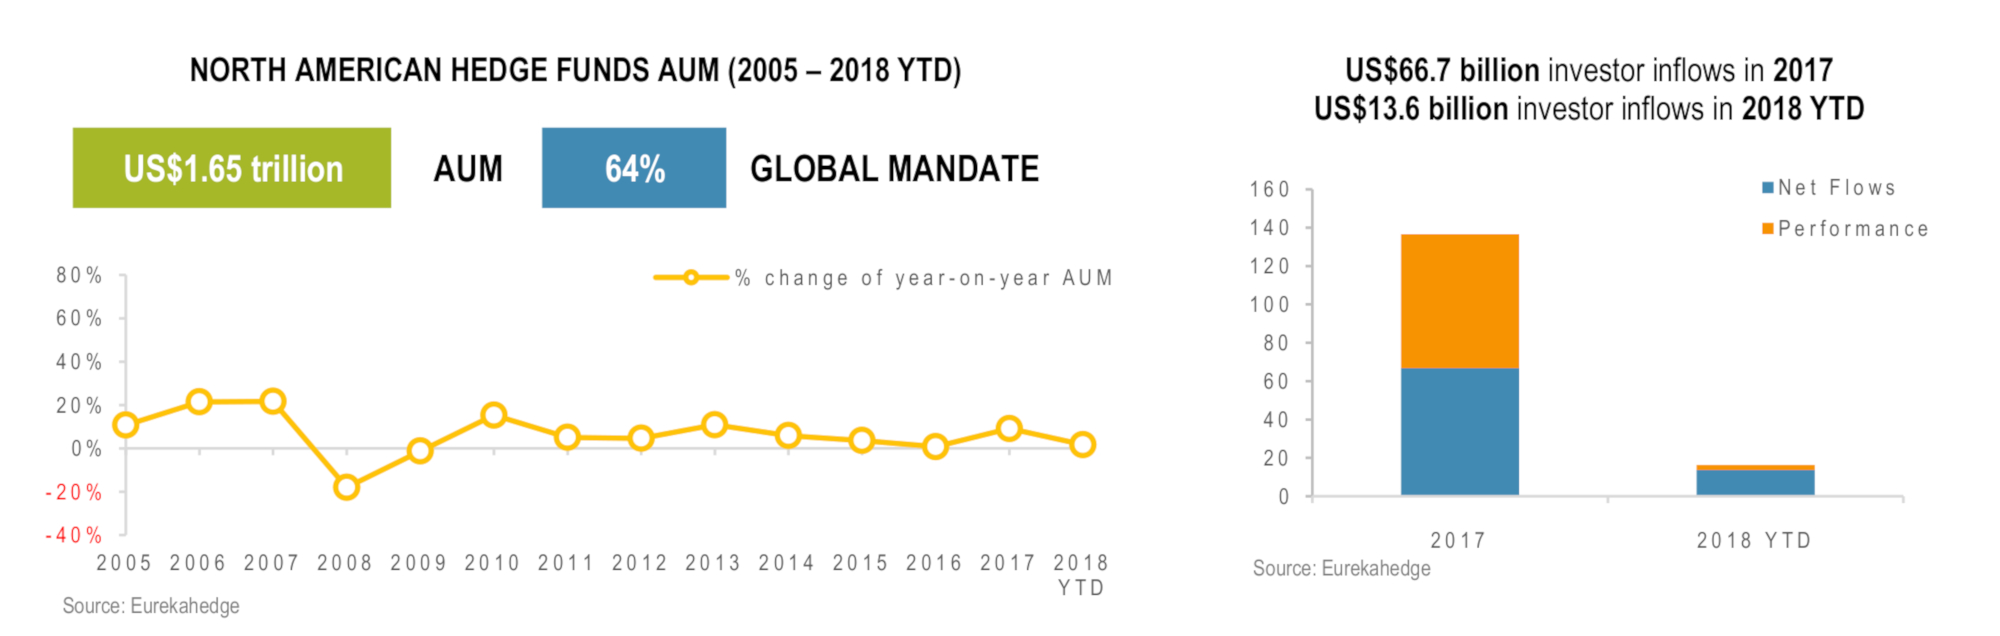 North American Hedge Funds Infographic October 2018 - AUM